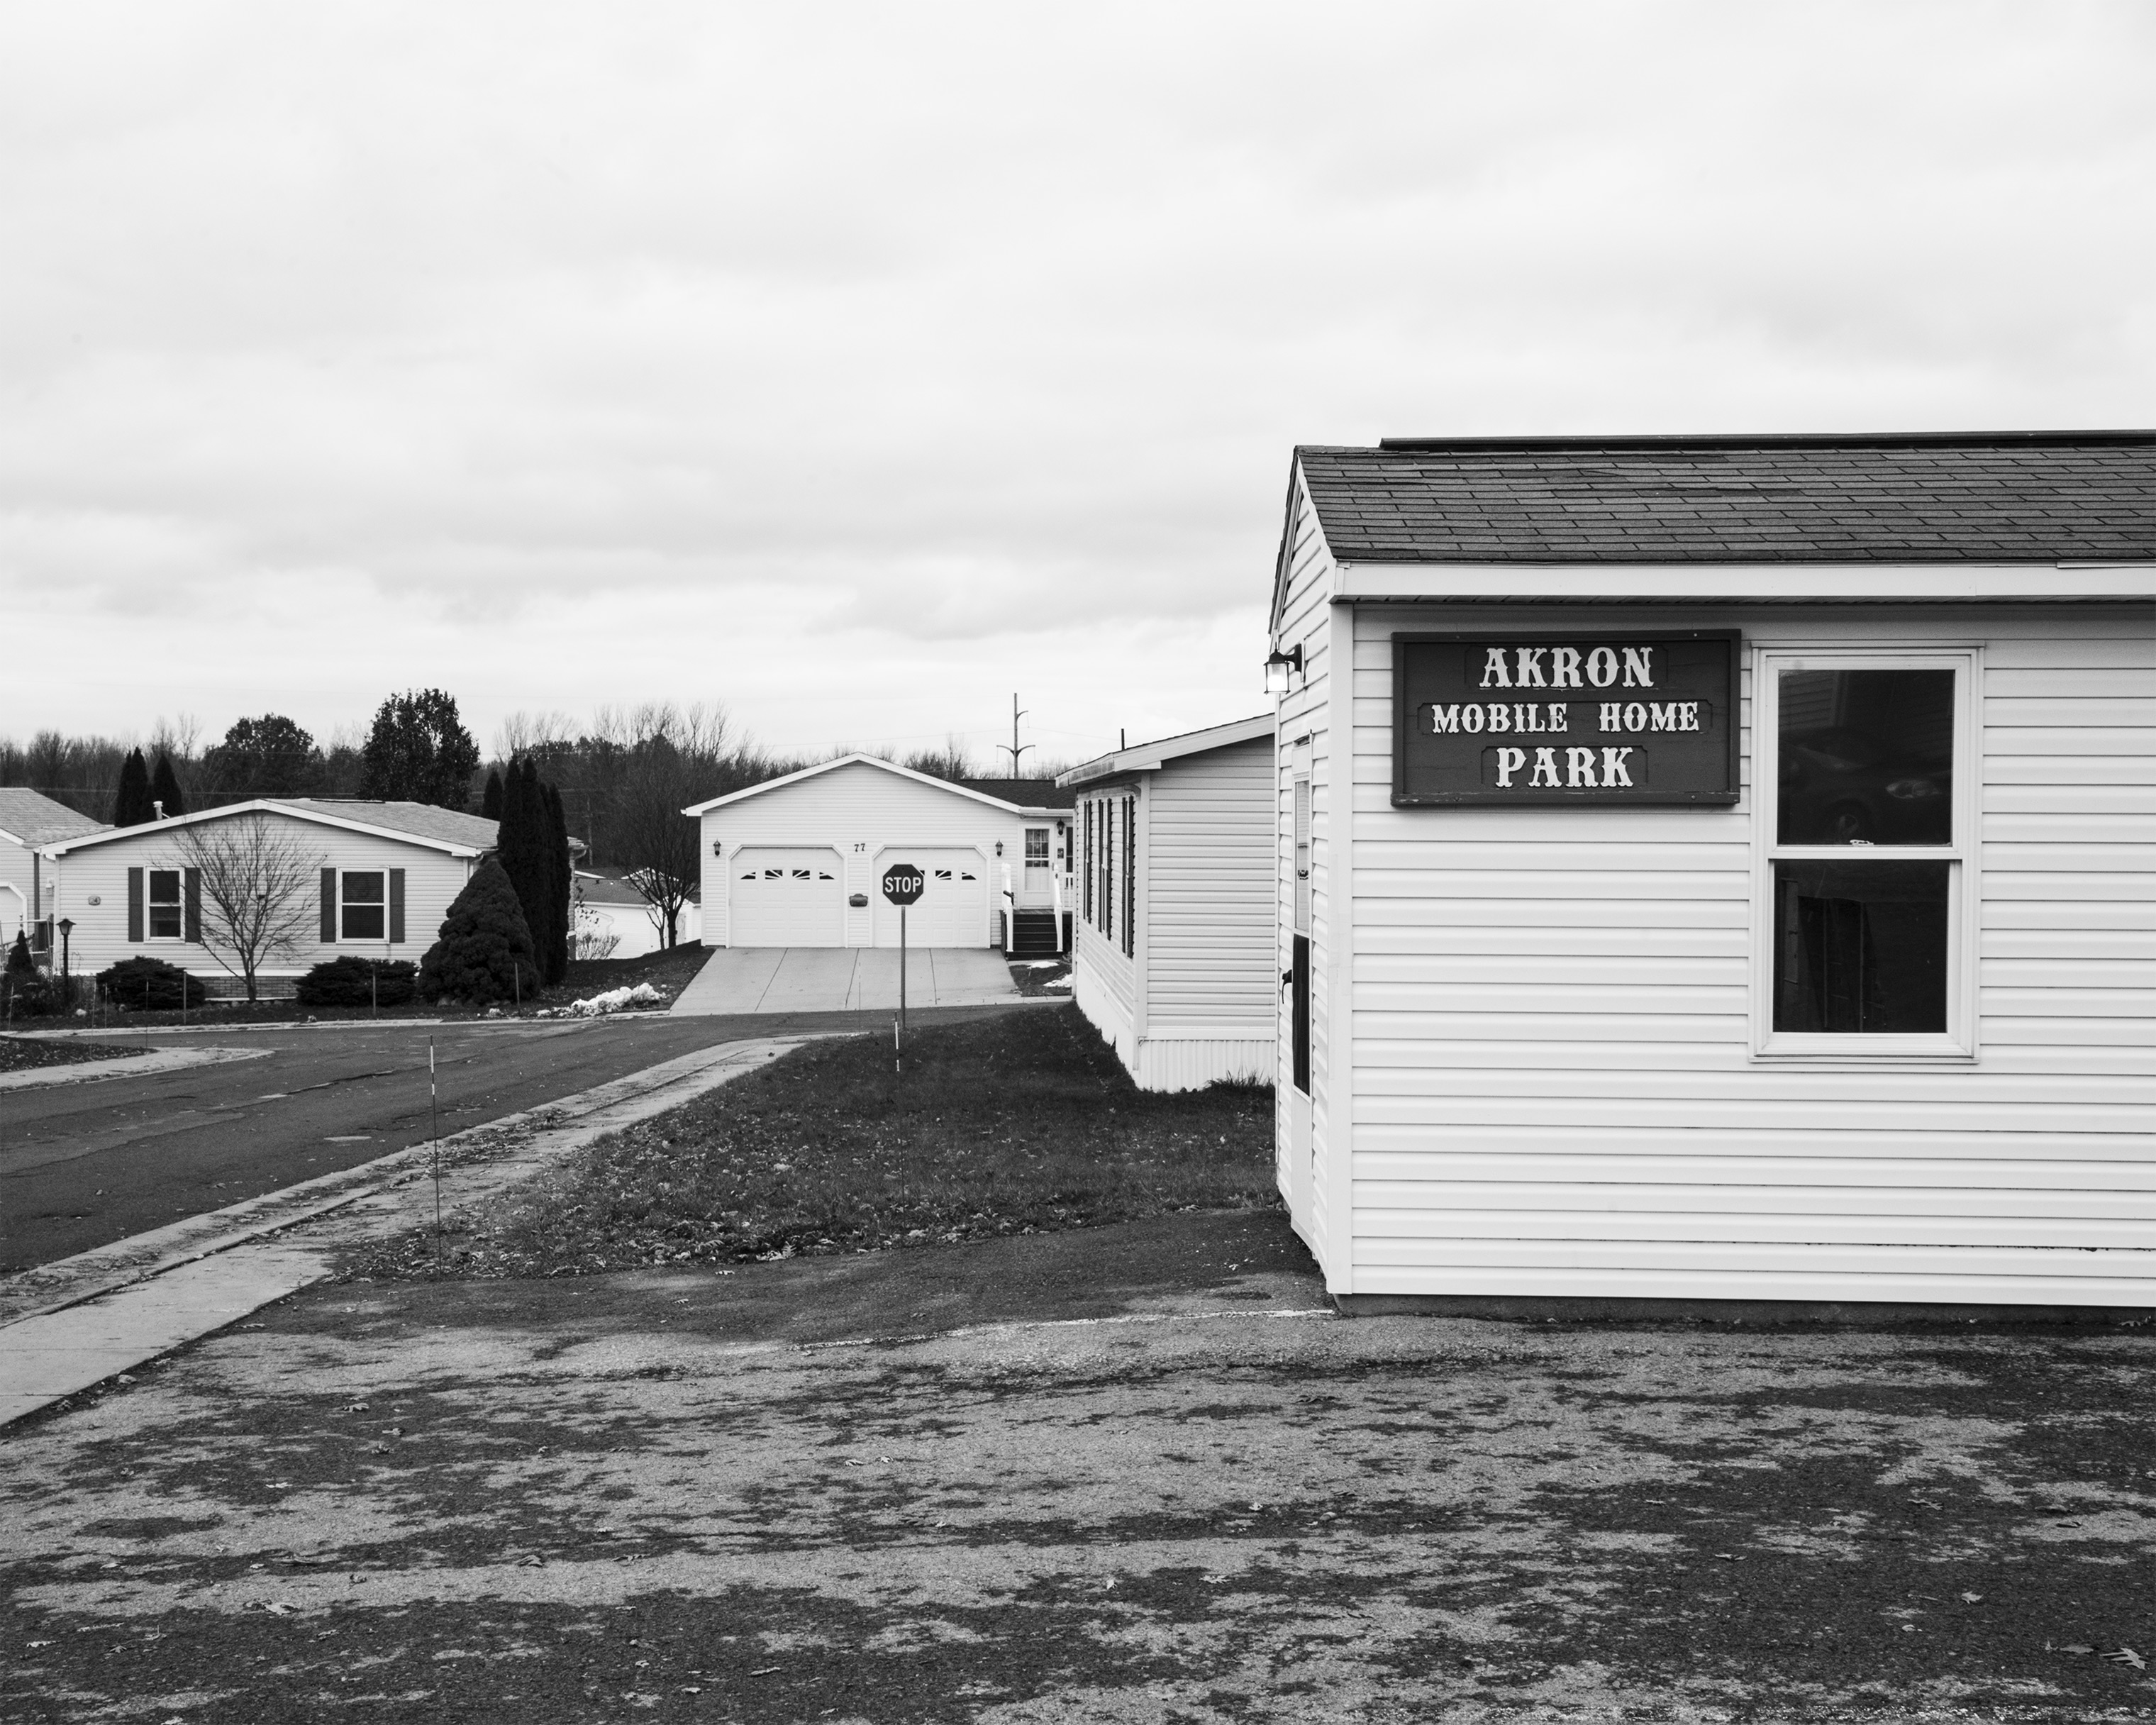 The entrance to the Akron Manufactured Home Community